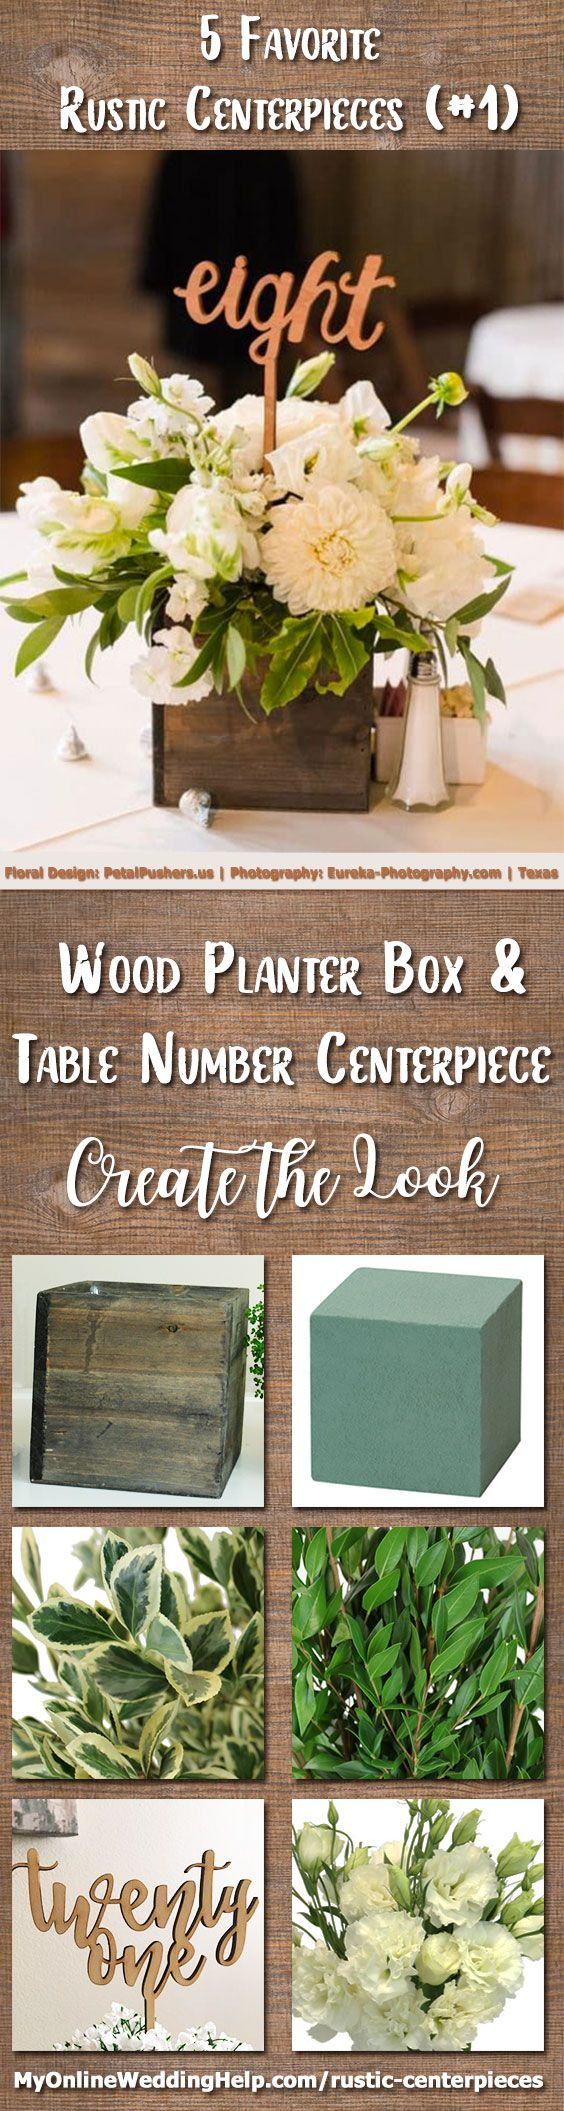 Wood planter box centerpiece with table number. This is a great way to have wedding items do double duty. Arrange flowers in a rustic planter box and add a number pick. If you are not talented in flower arrangements, use baby's breath or hydrangeas. There are links and information on the page on how to DIY your own centerpiece and/or contact the vendors about their services: Floral arrangement by Petal Pushers and photography by Eureka Photography. Austin, Texas.